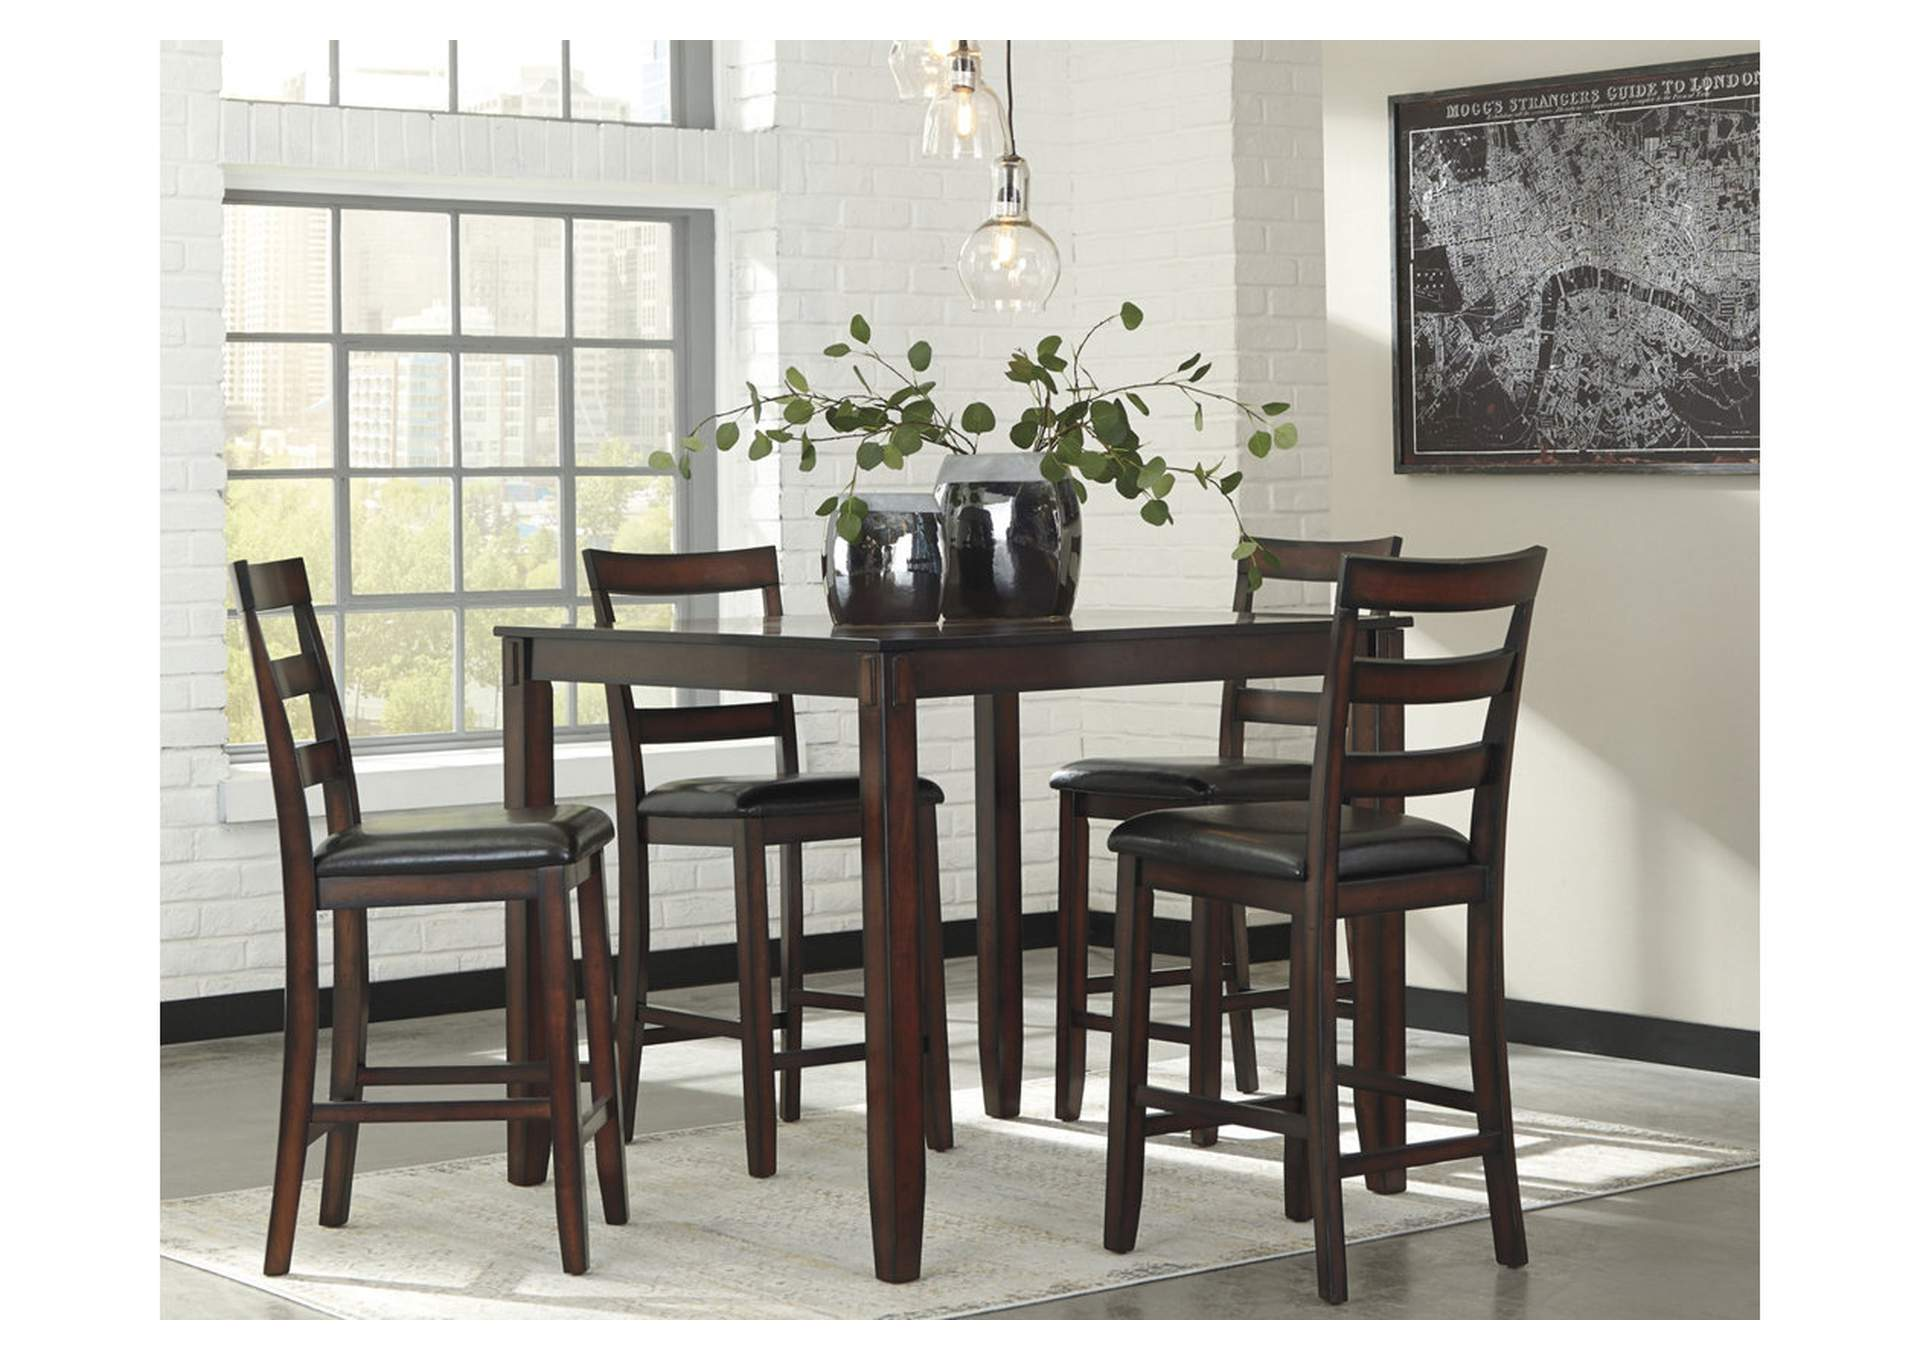 Coviar Brown Dining Room Counter Table Set,Signature Design By Ashley